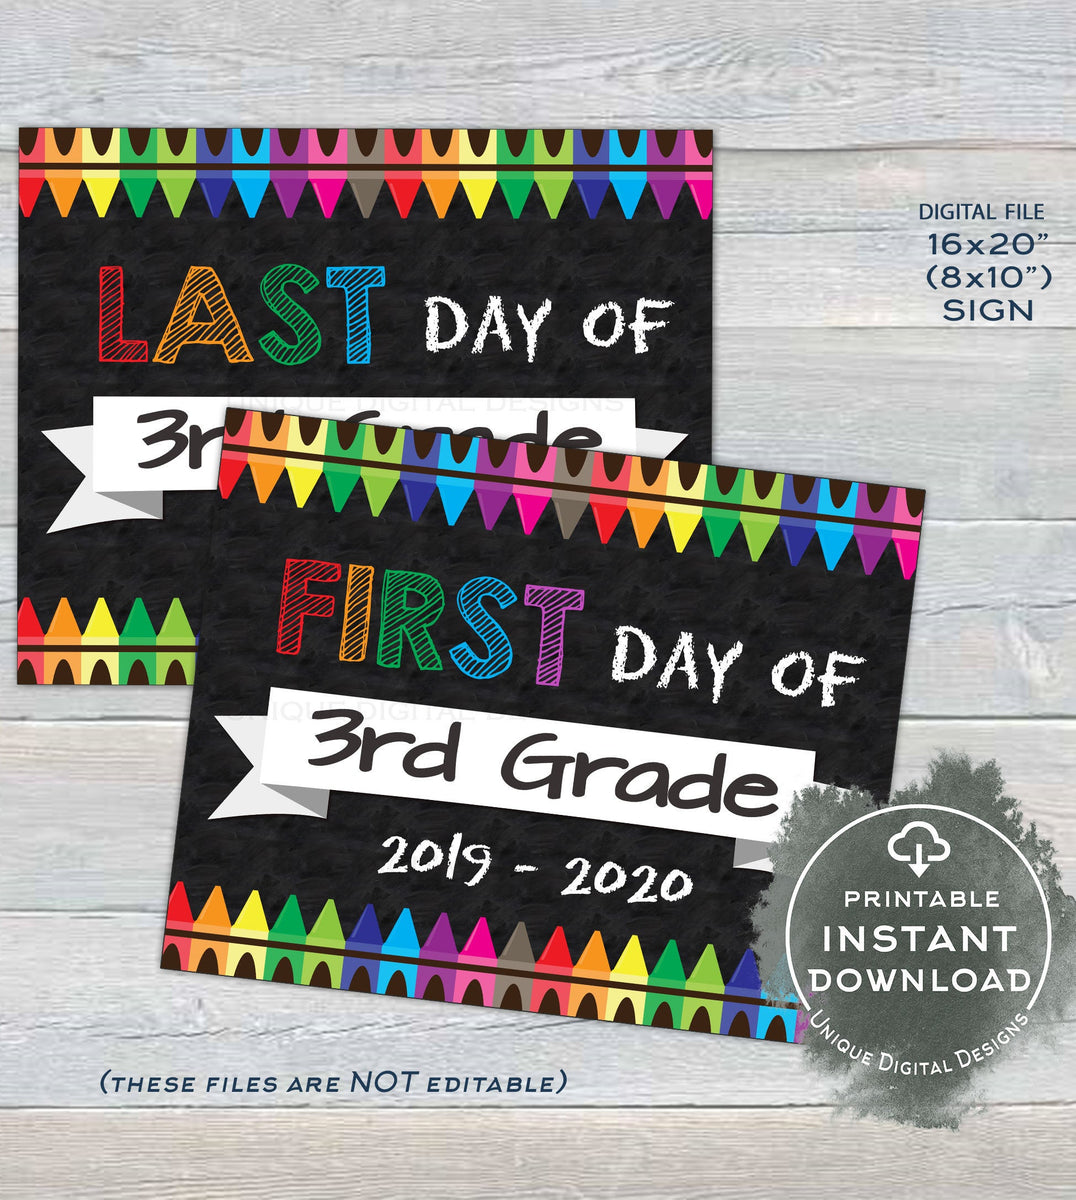 picture about First Day of 3rd Grade Sign Printable titled Very first working day of College or university Chalkboard Indicator reusable, Again in the direction of College or university 3rd Quality Indicator Closing working day of College or university Crayon do it yourself Electronic Printable Instantaneous Down load